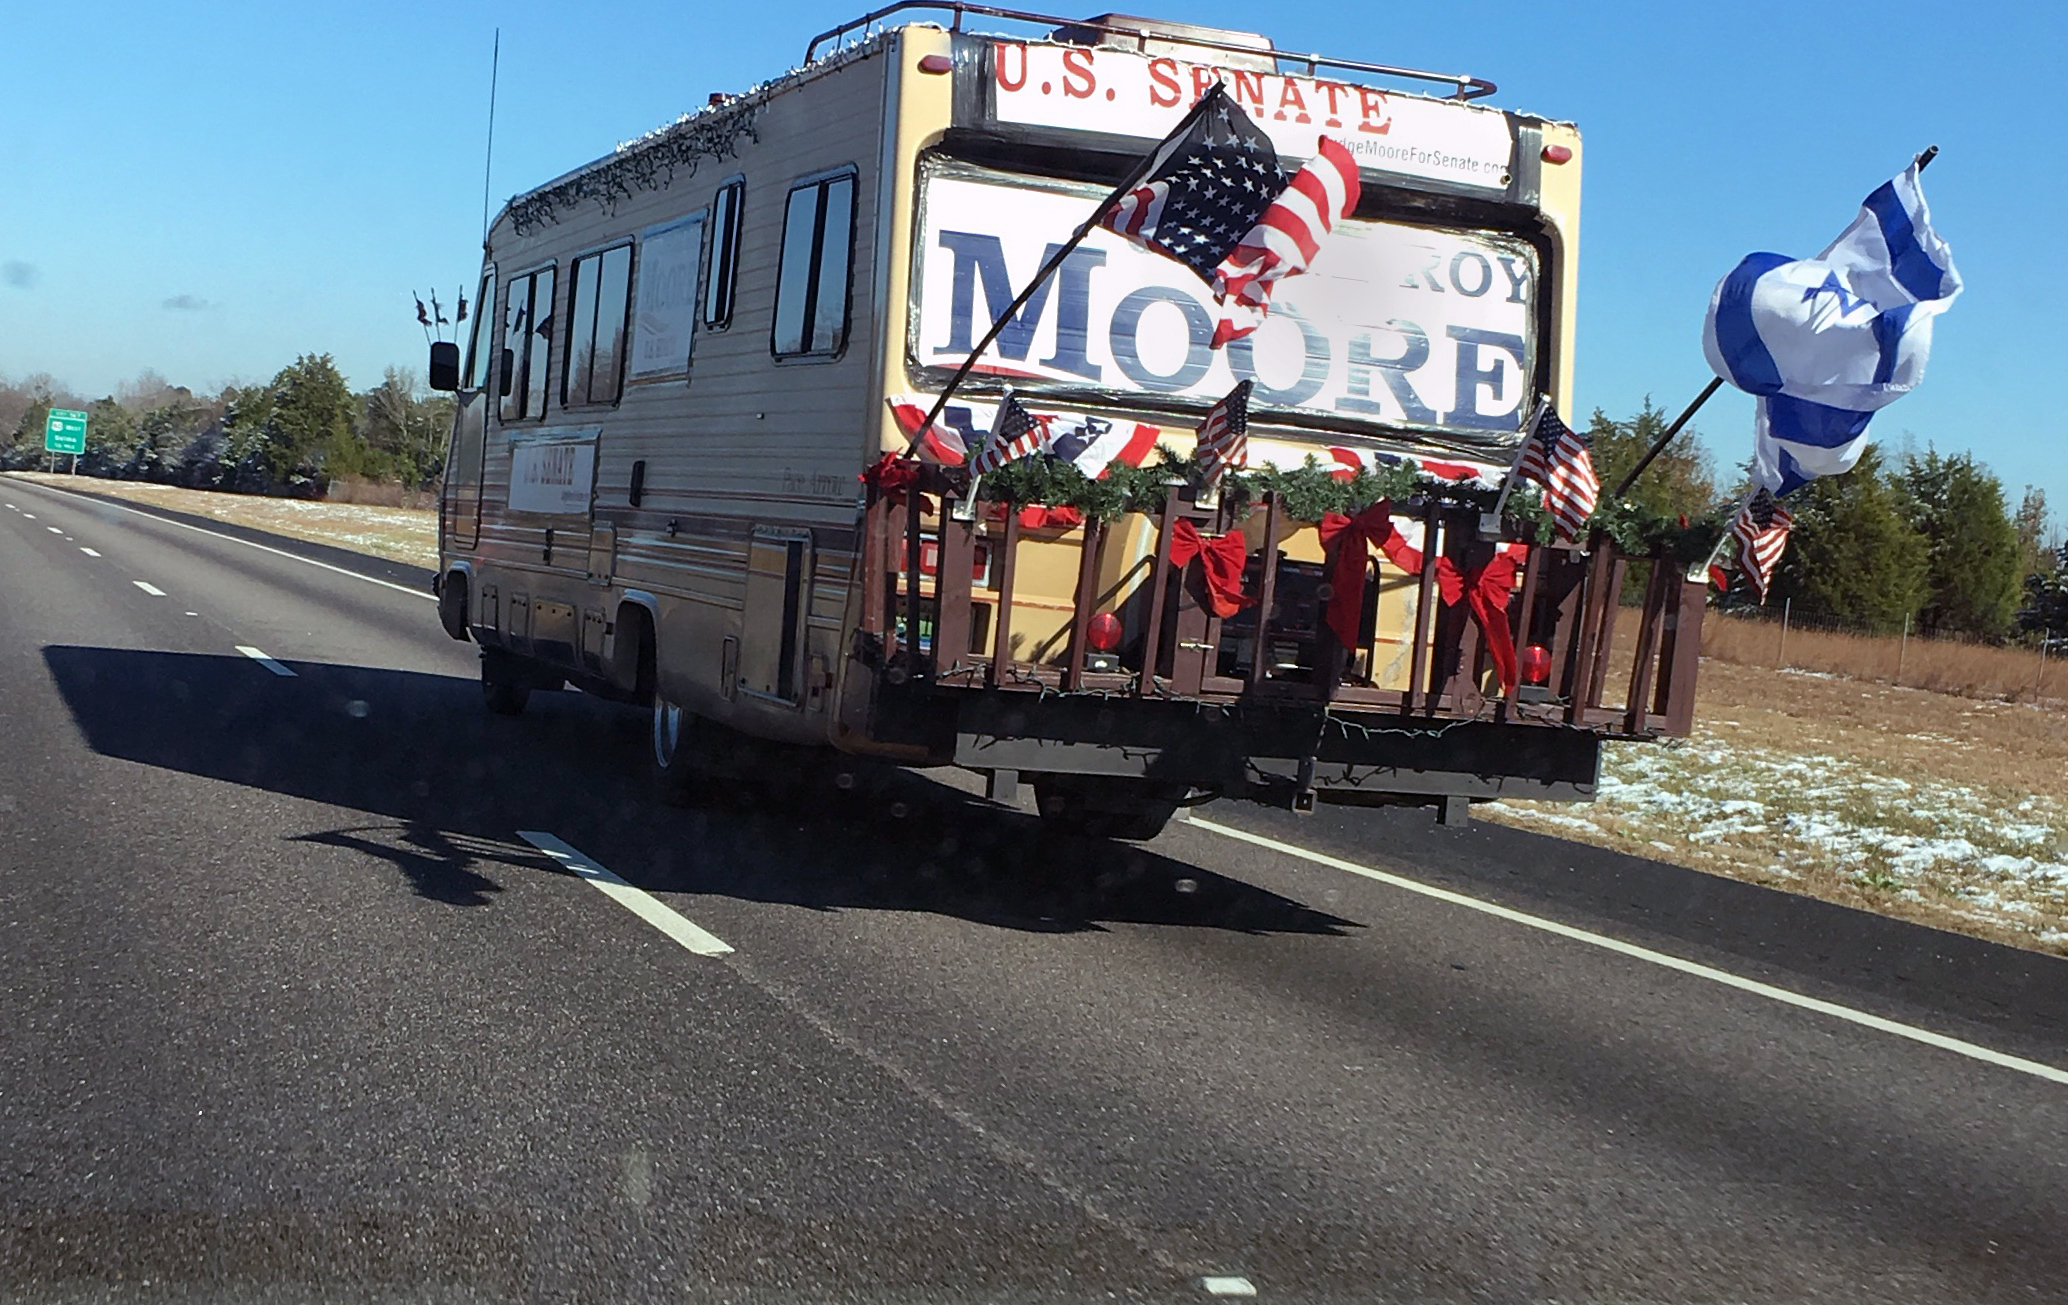 Image:A recreational vehicle decked with a 'Roy Moore for Senate' sign and the American and Israeli flags drives north on I-65 toward Montgomery, Alabama, on Dec. 9, 2017.